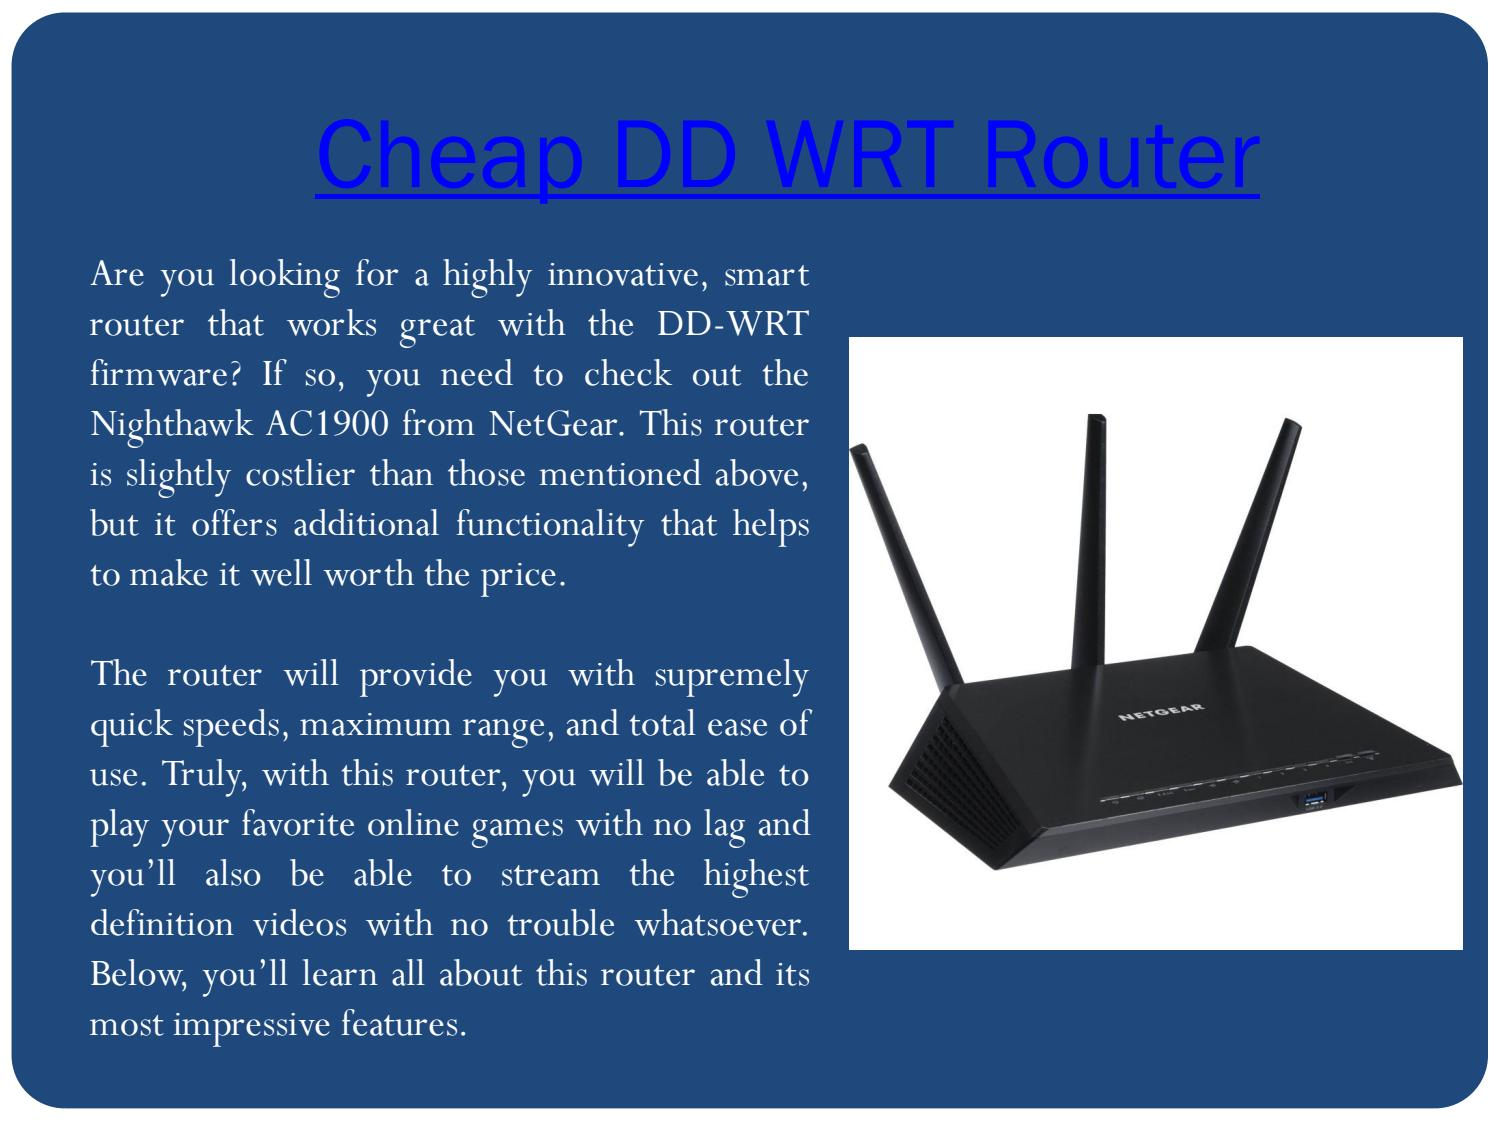 Best dd-wrt router under $50 by Best modem router for gaming